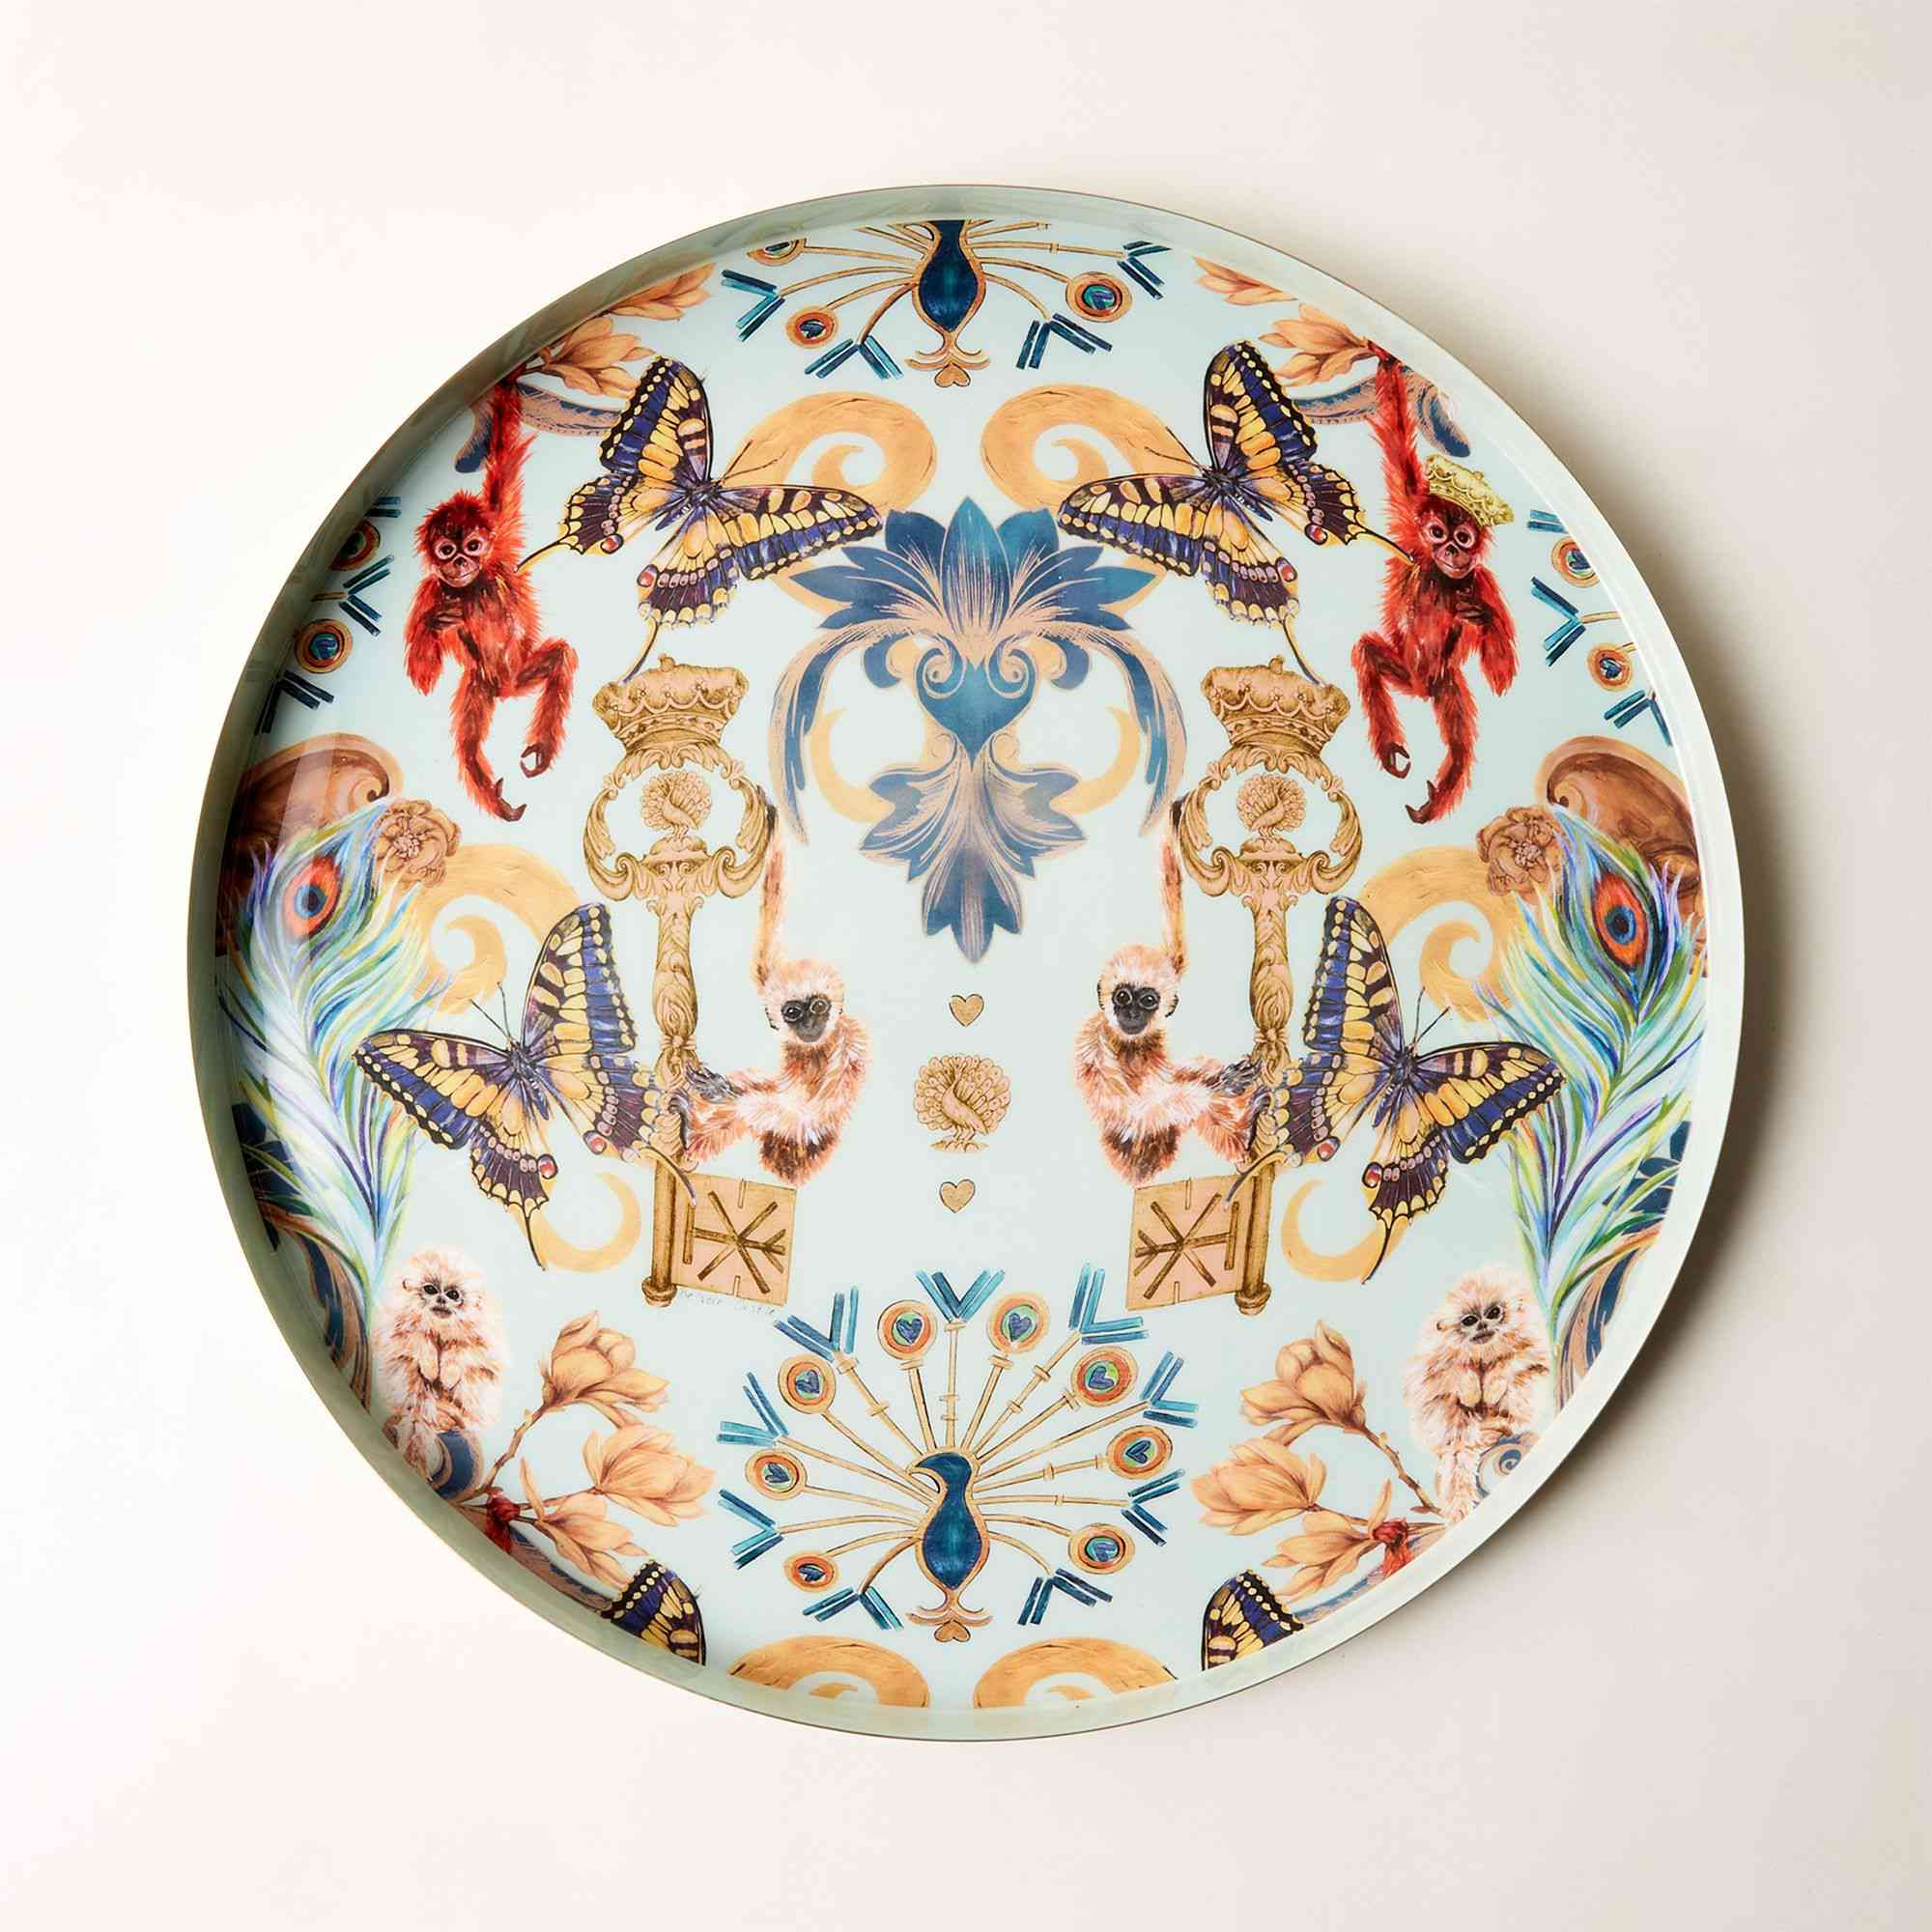 A round serving tray by CB2 featuring butterflies, monkeys, and peacocks on a light blue background.